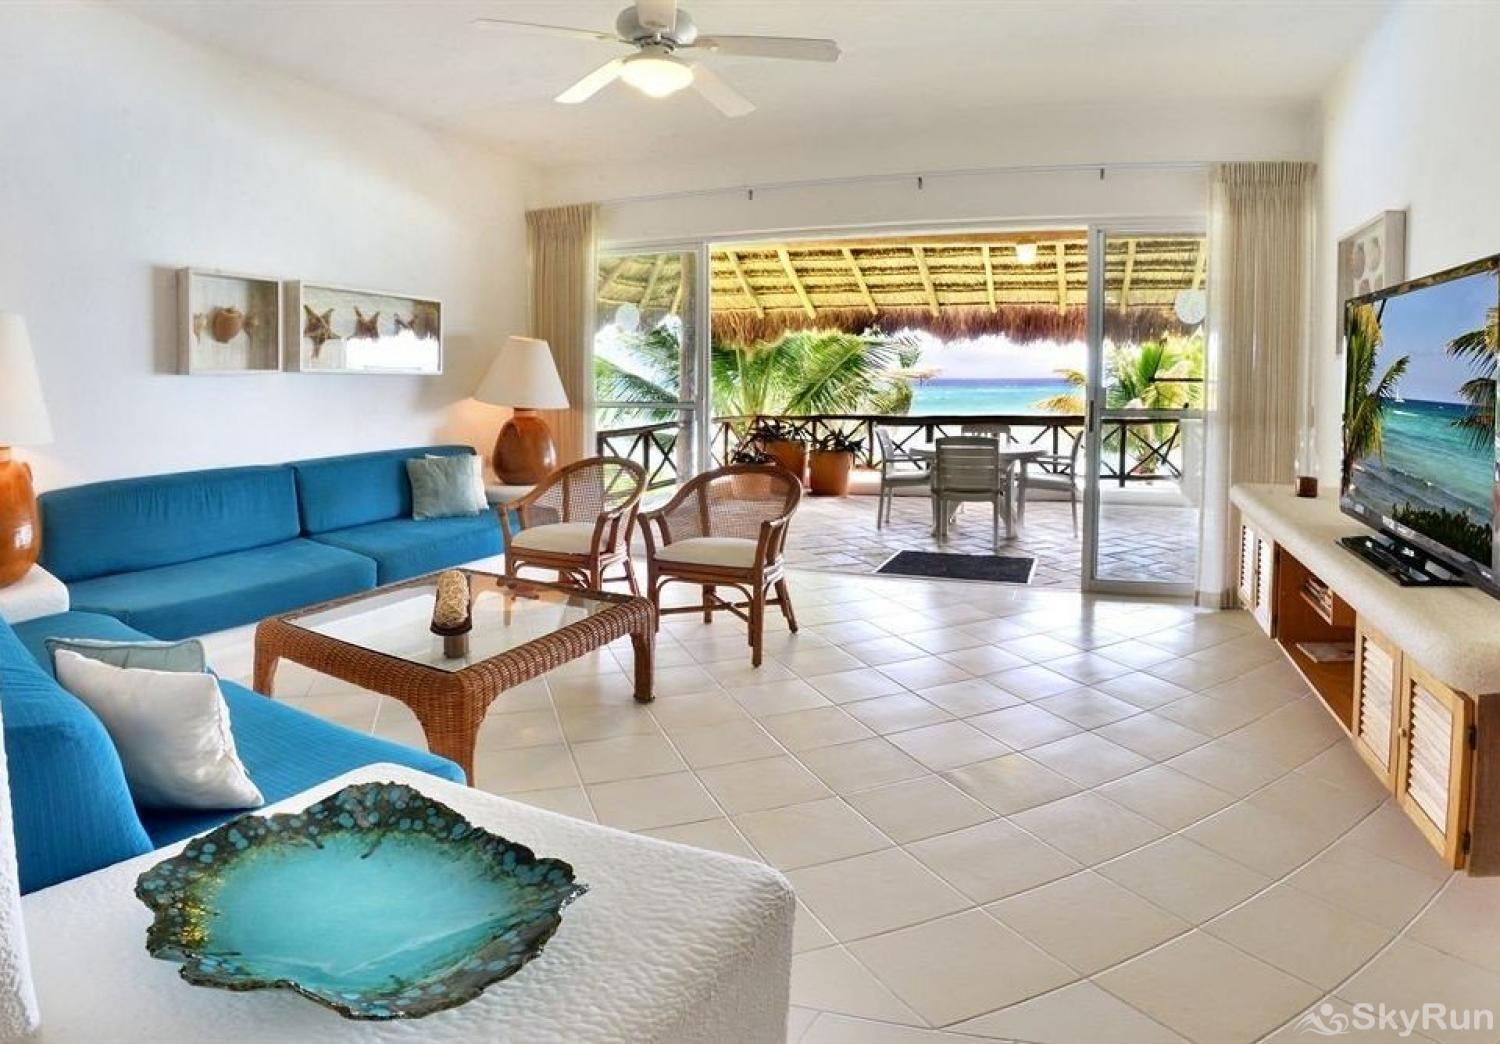 Luxurious Beachfront in Private Location 312 3 Bedroom 2nd Floor New Beachfront Condo near tulum